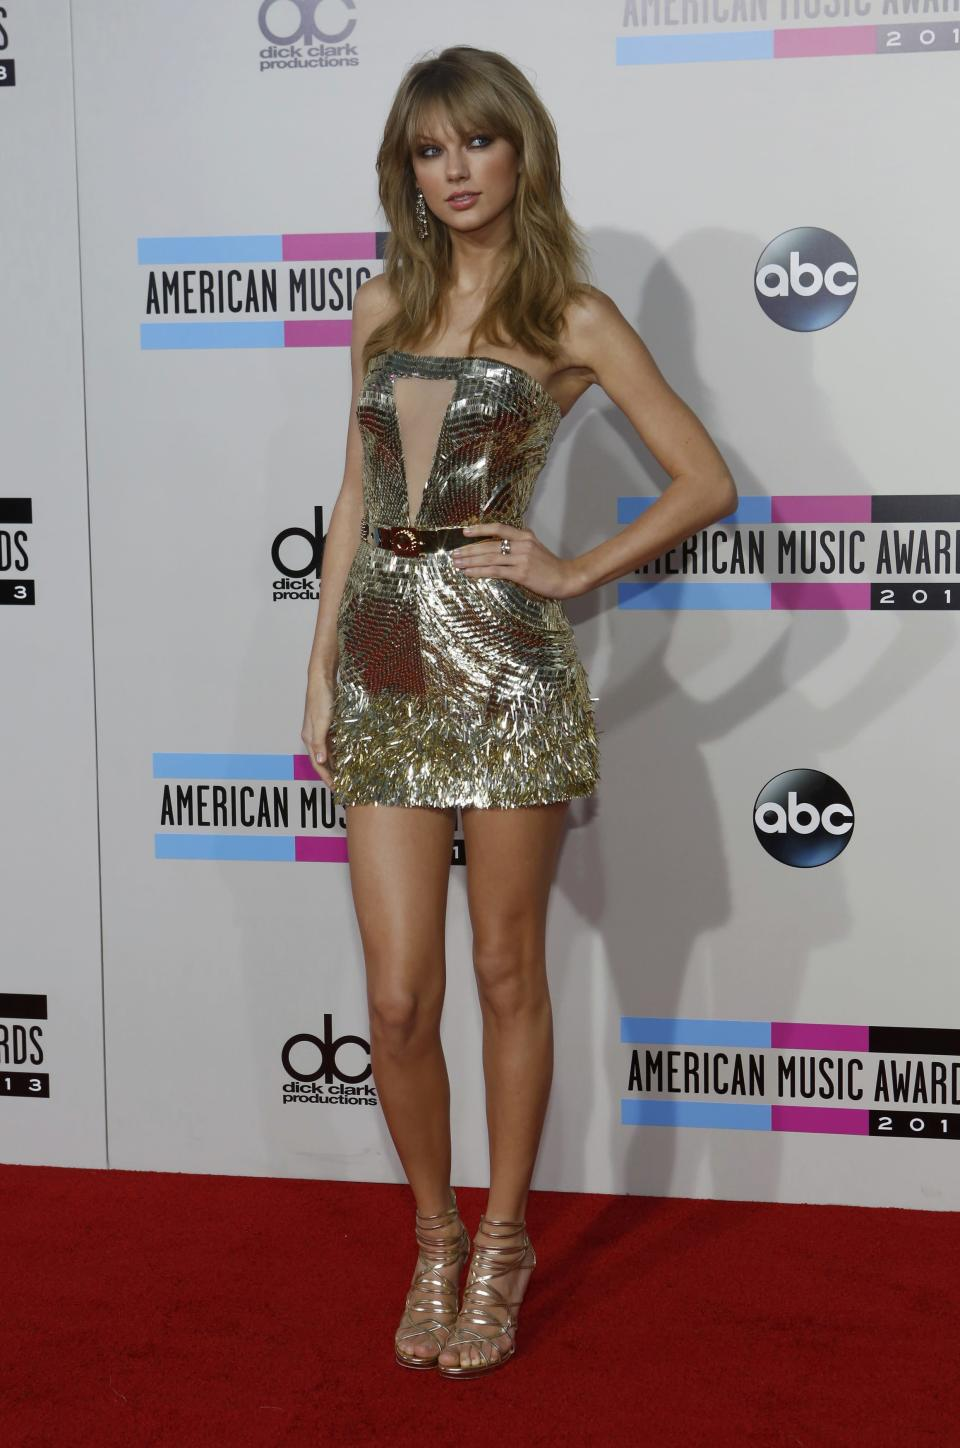 Taylor Swift was every inch the rock star tonight. Her thigh-high, fitted strapless metallic gold dress with the sheer front panel, paired with strappy gold sandals, loose hair and smoky eyes made her one of the best-dressed on the carpet. REUTERS/Mario Anzuoni (UNITED STATES - TAGS: ENTERTAINMENT)(AMA-ARRIVALS)